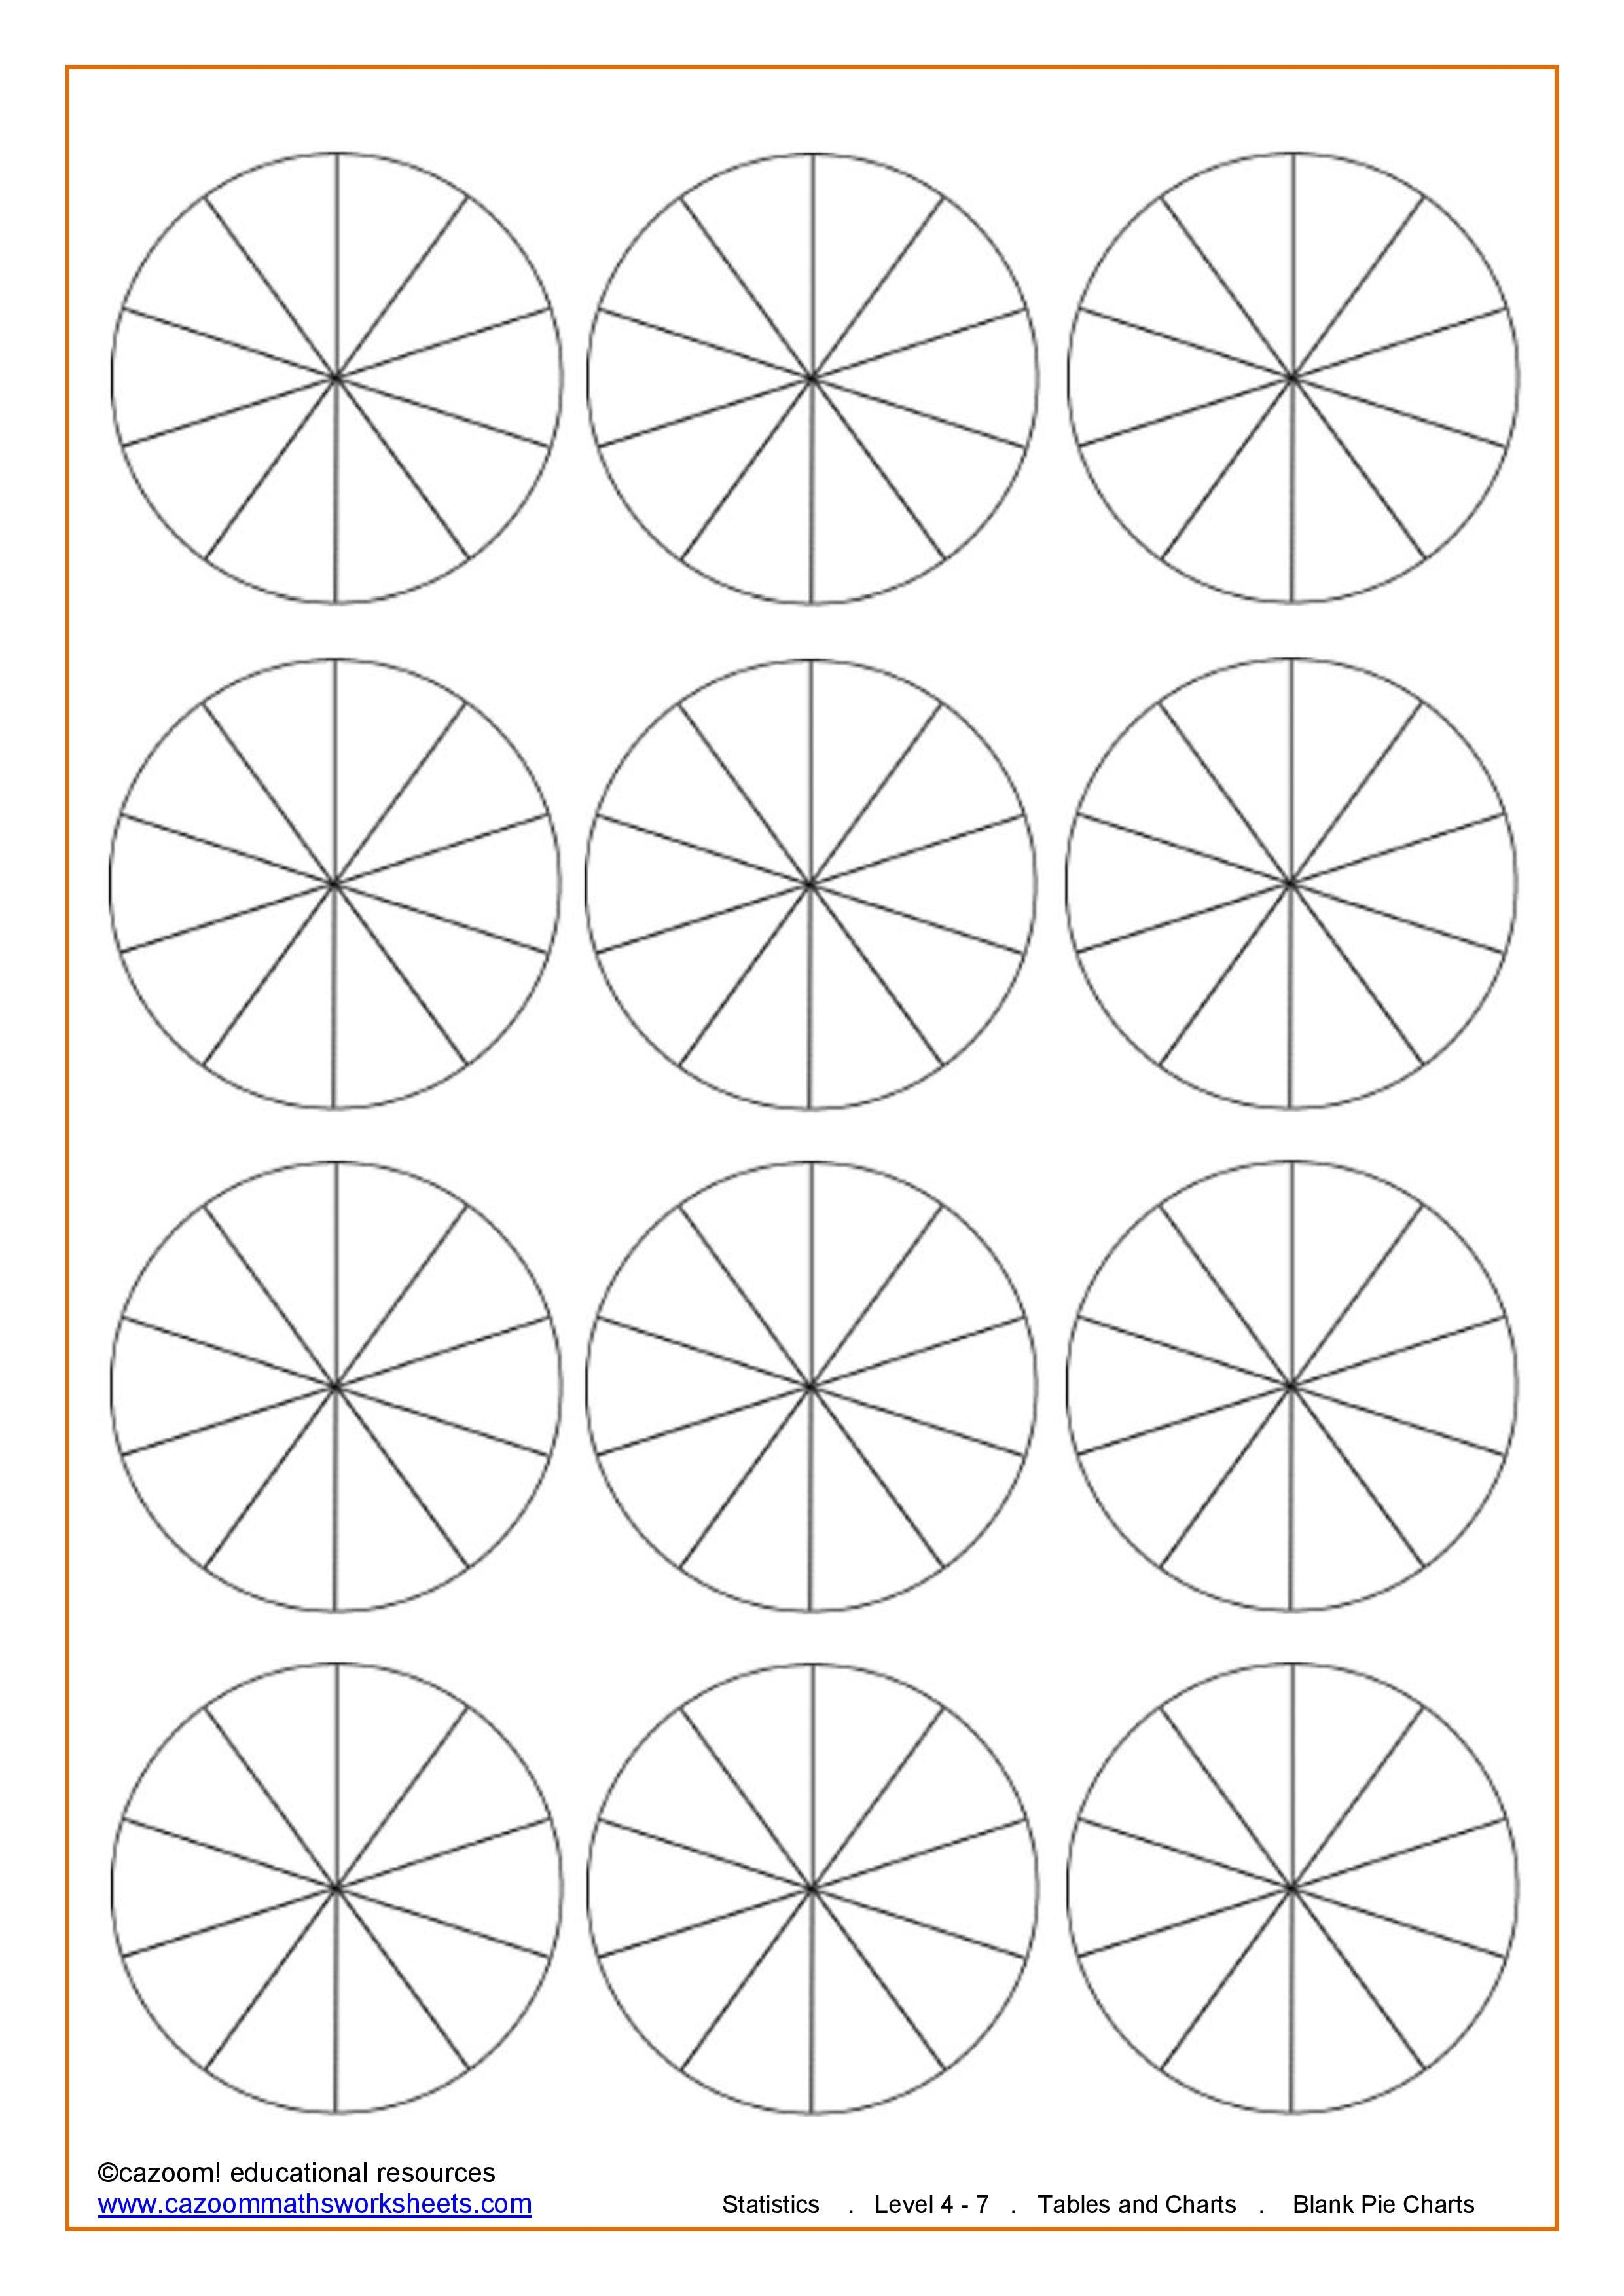 Blank Pie Charts 10 Sections